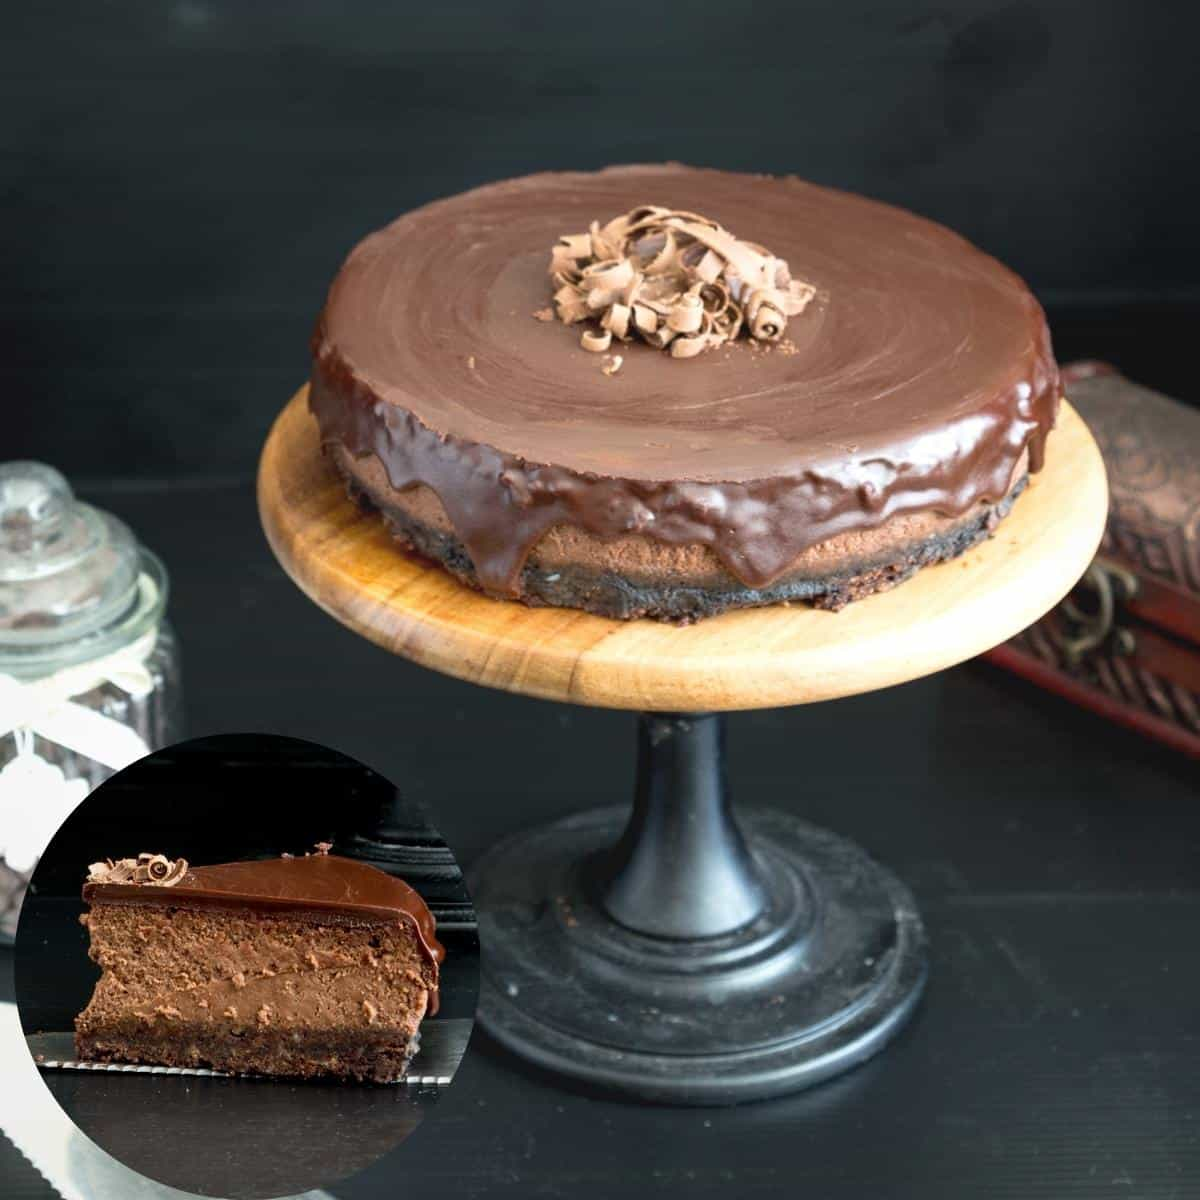 Cake stand with baked cheesecake with chocolate glaze.